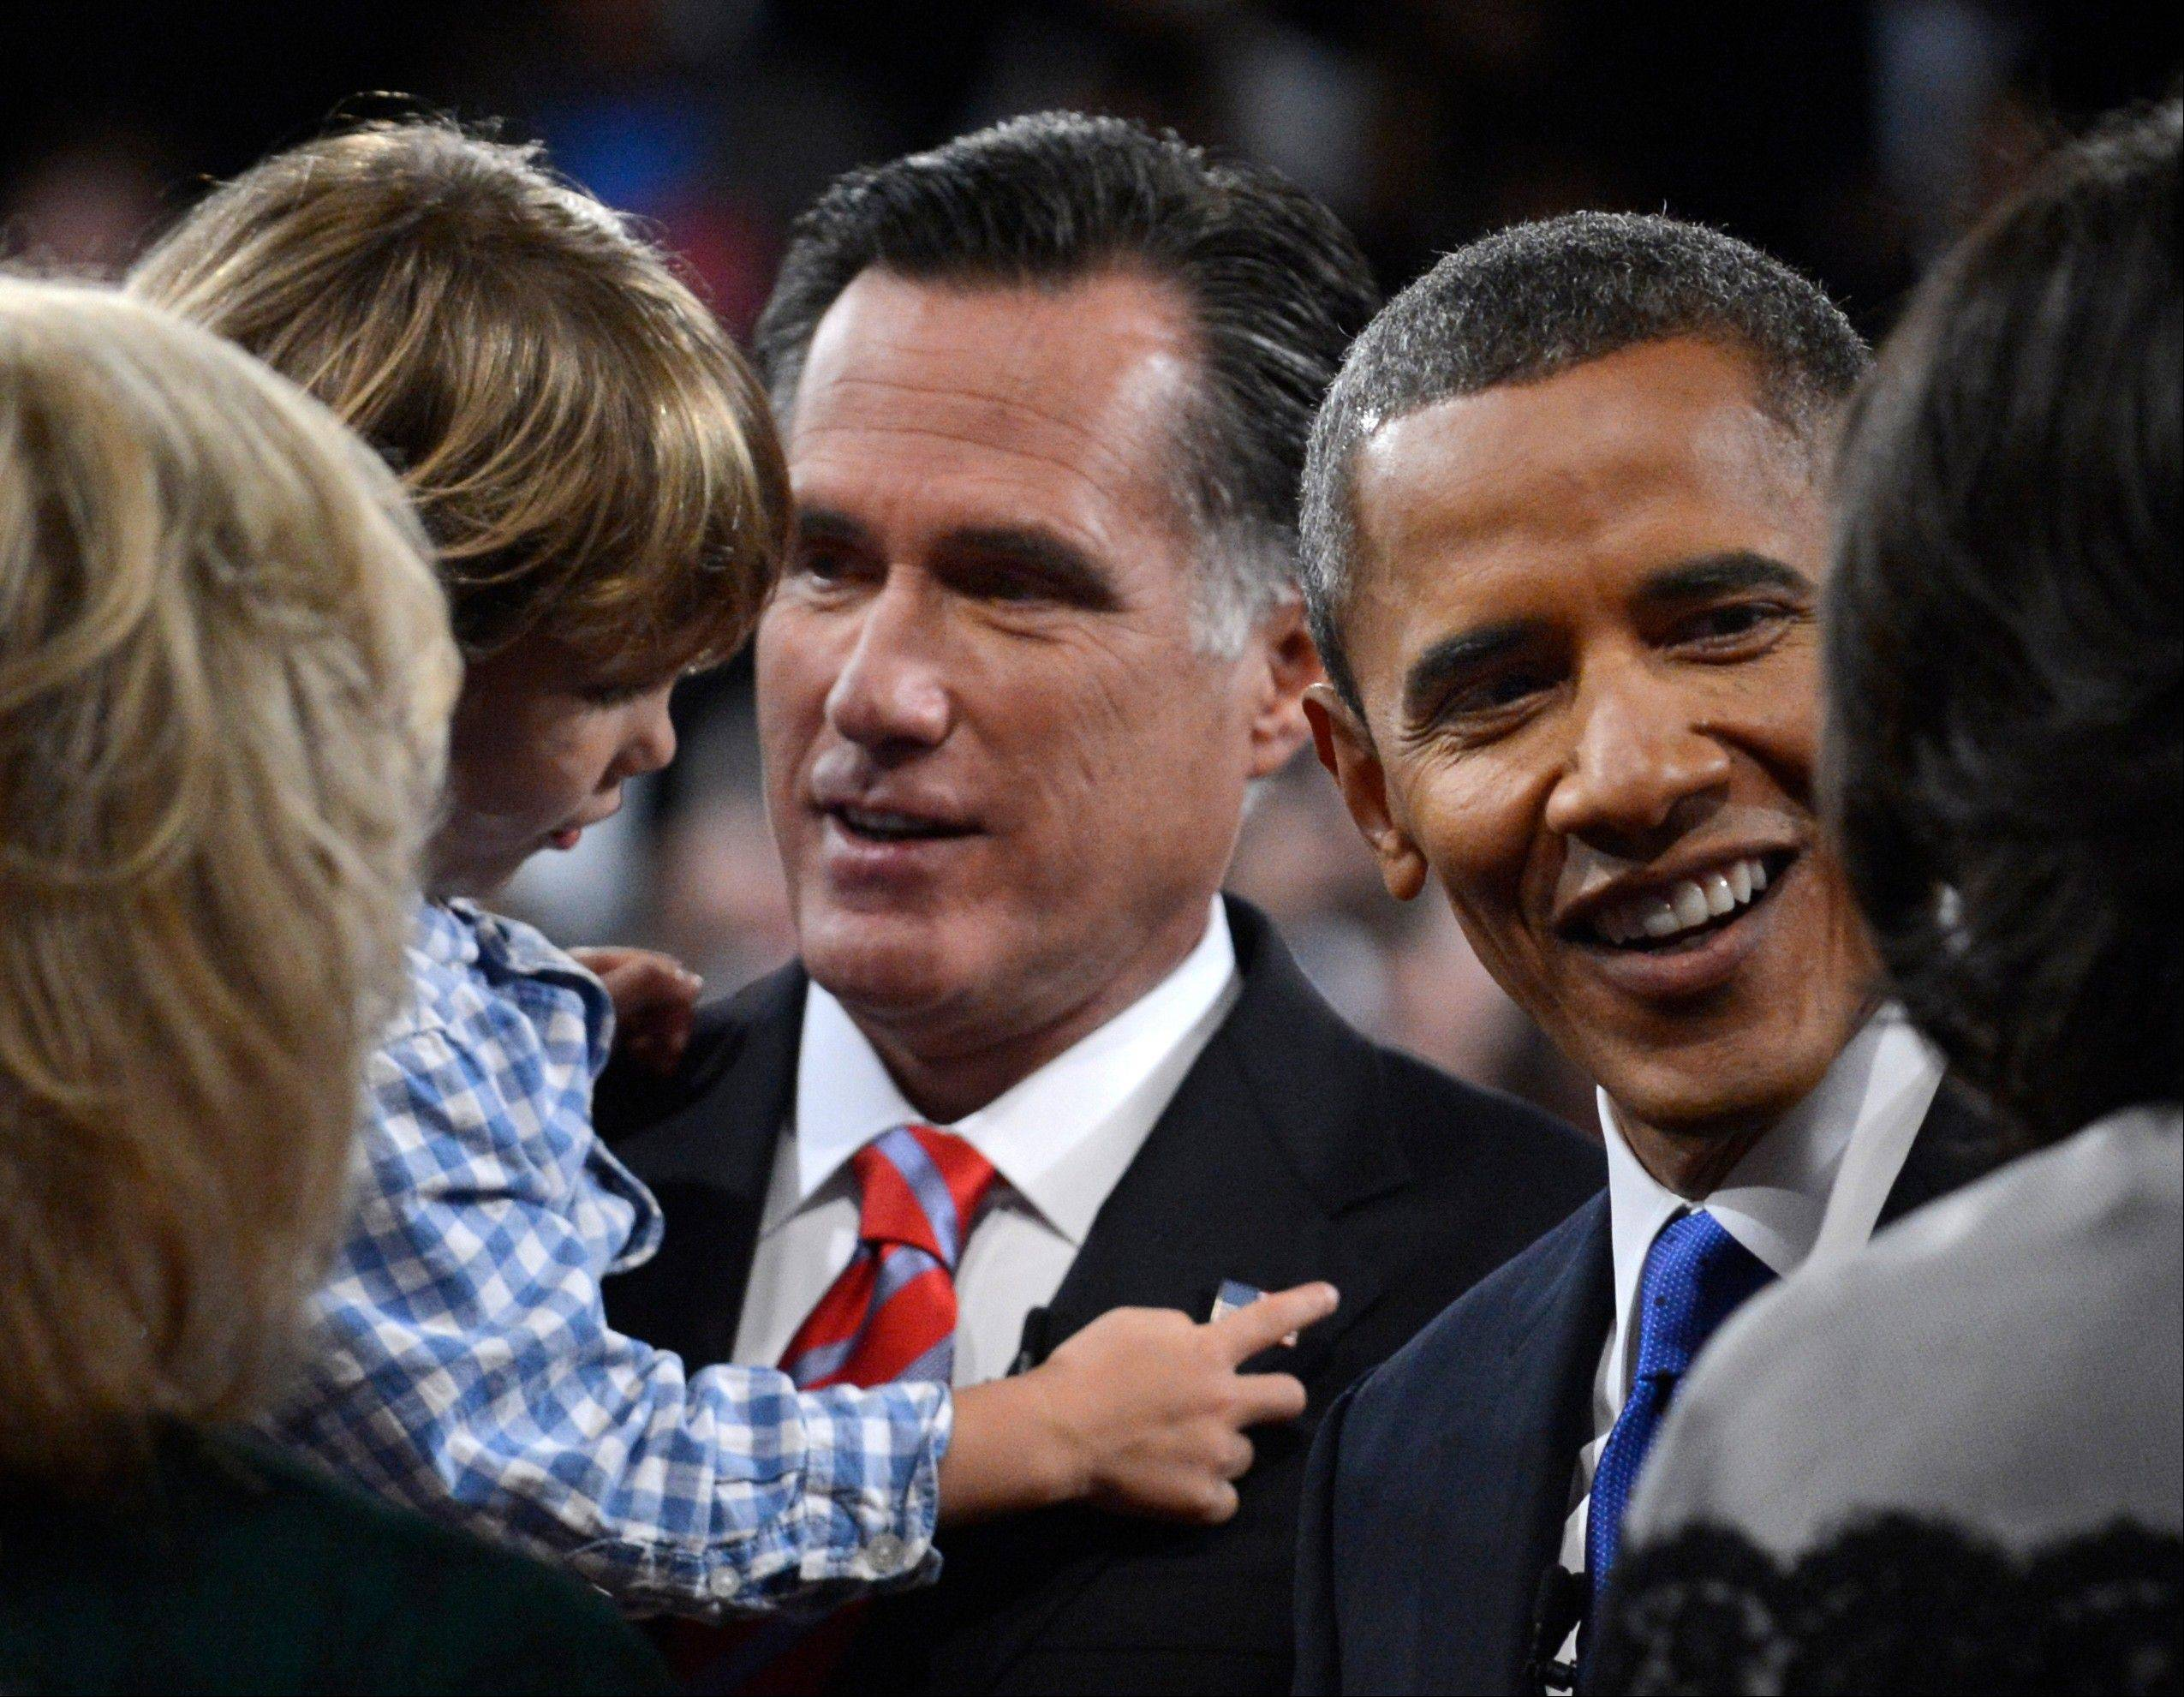 President Barack Obama and Republican presidential nominee Mitt Romney meet family members after the